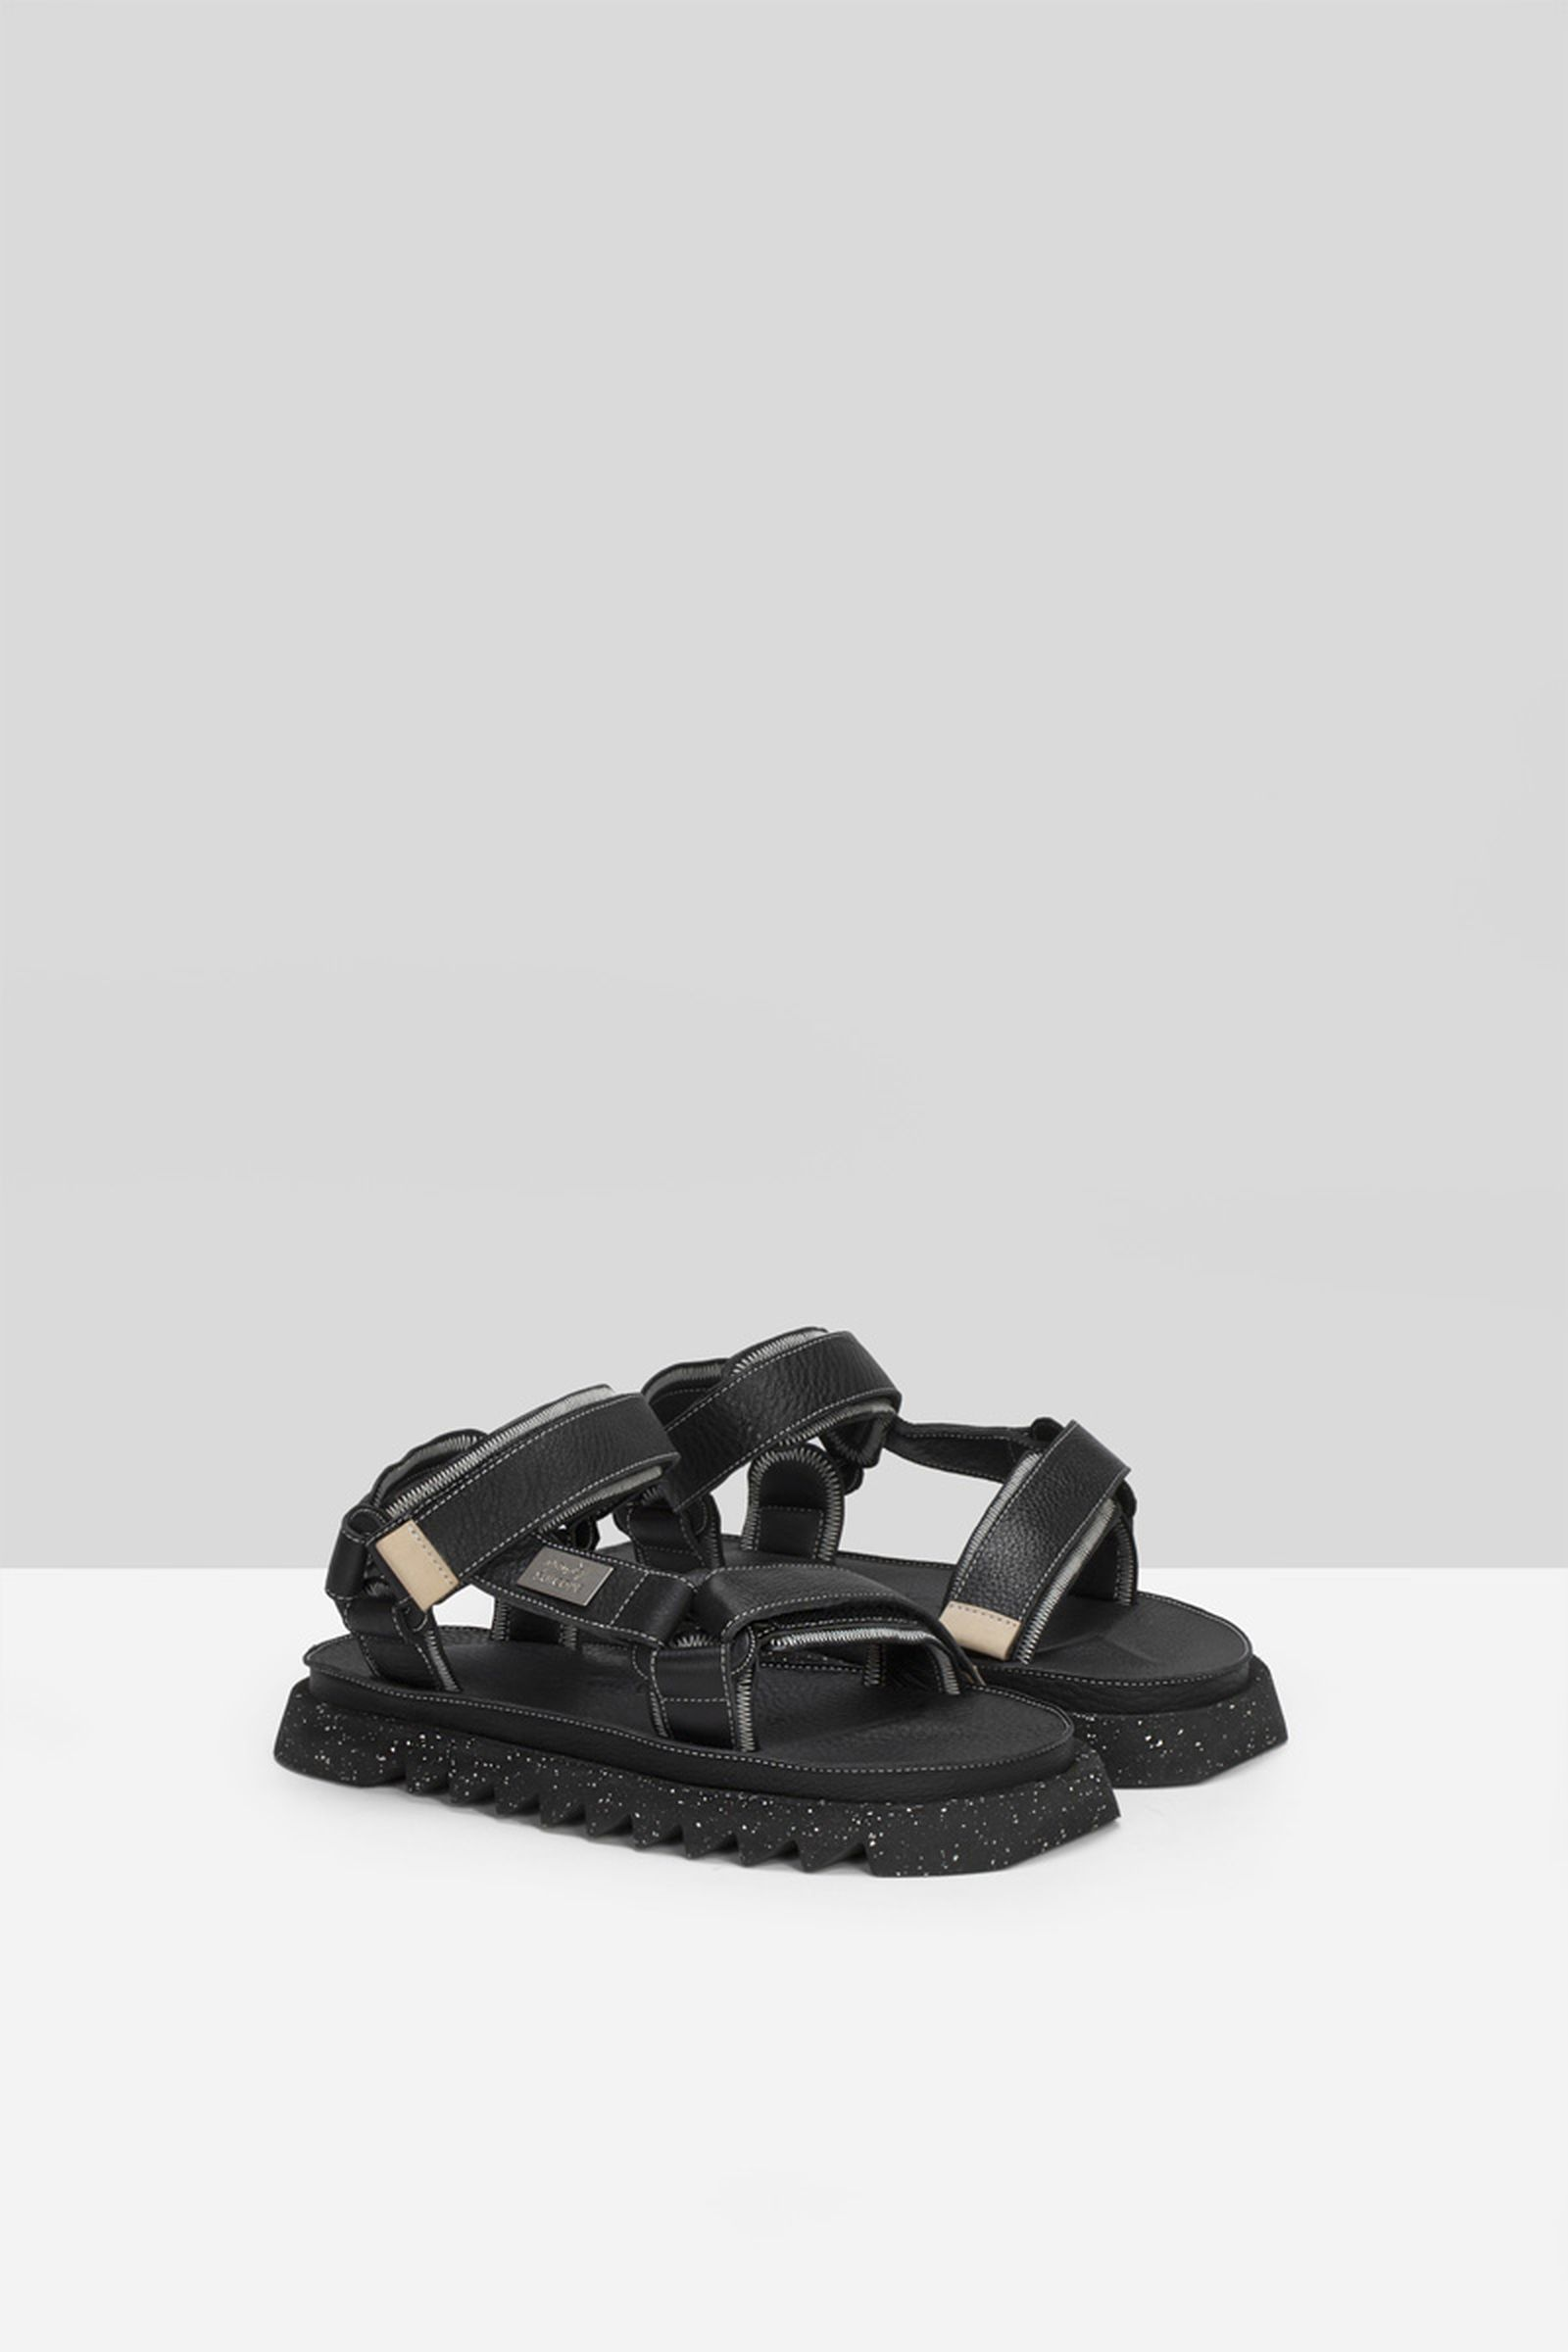 marsell-suicoke-ss21-collection-release-date-price-11